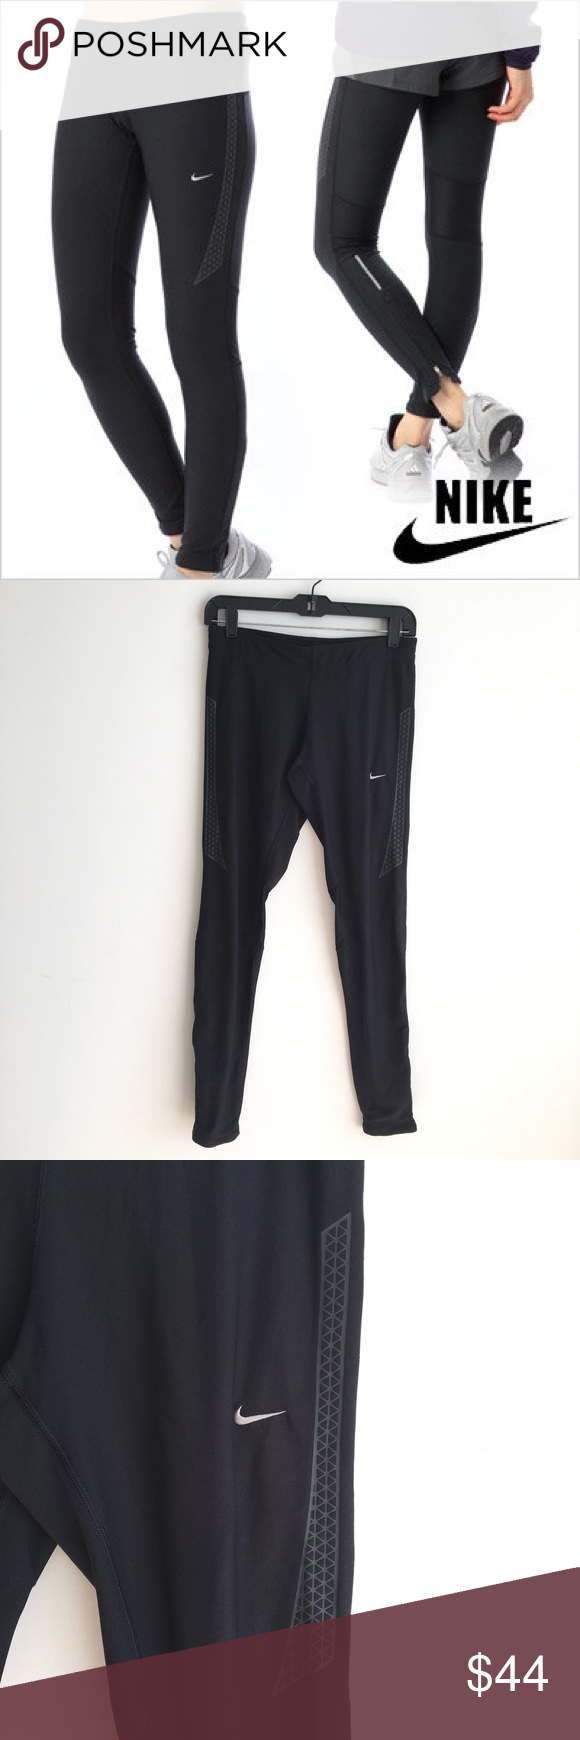 0aa93db004217b Nike Dri-Fit Running Leggings with Zippered Ankle Nike running tights.  Tight fit. Zipper ankles. Zipper pocket on back waistband. Reflective  stripes.